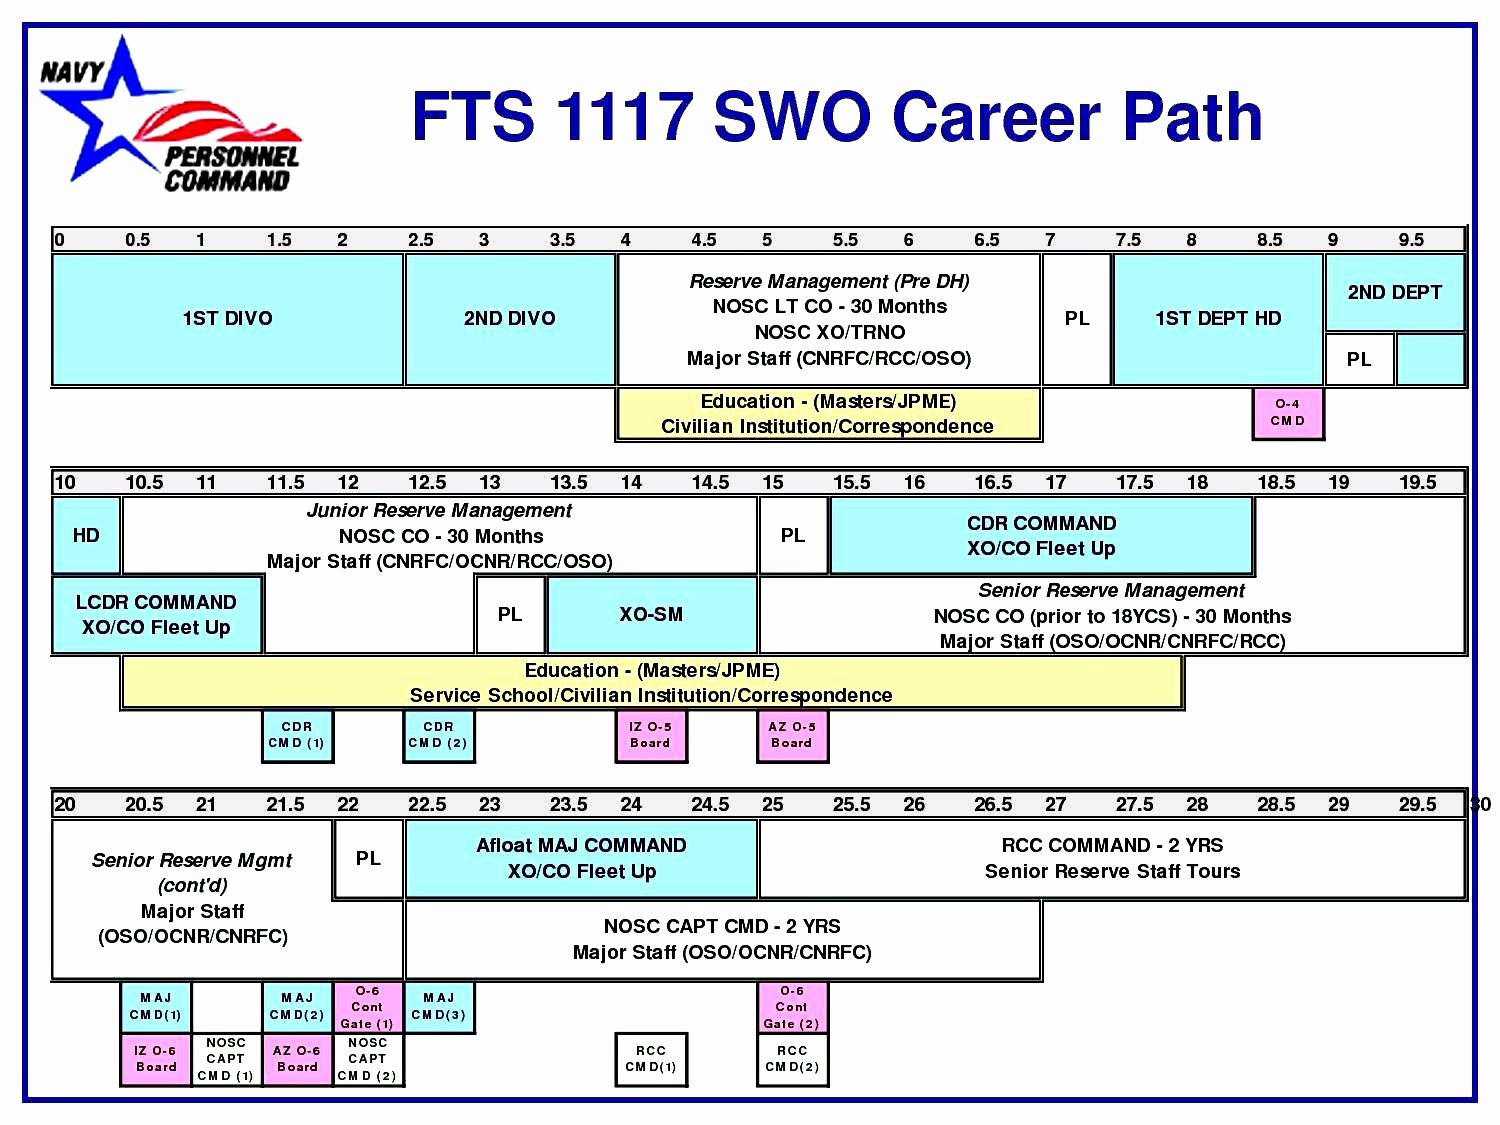 Career Path Planning Template Unique 16 Career Path Template Images Career Mapping and Planning